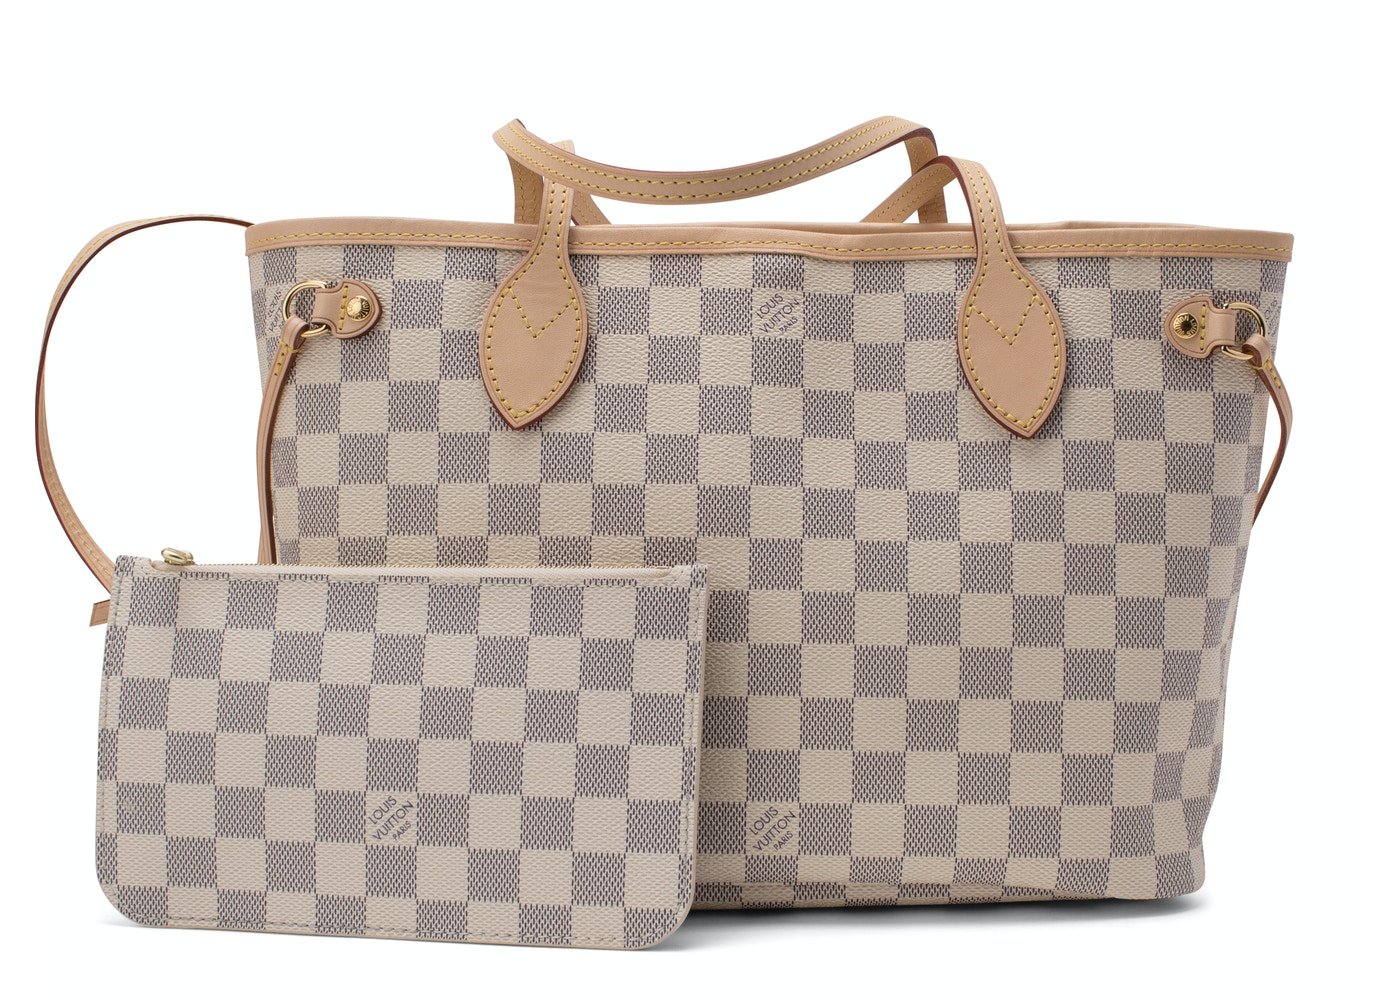 Louis Vuitton Neverfull Damier Azur Handbag Catawiki